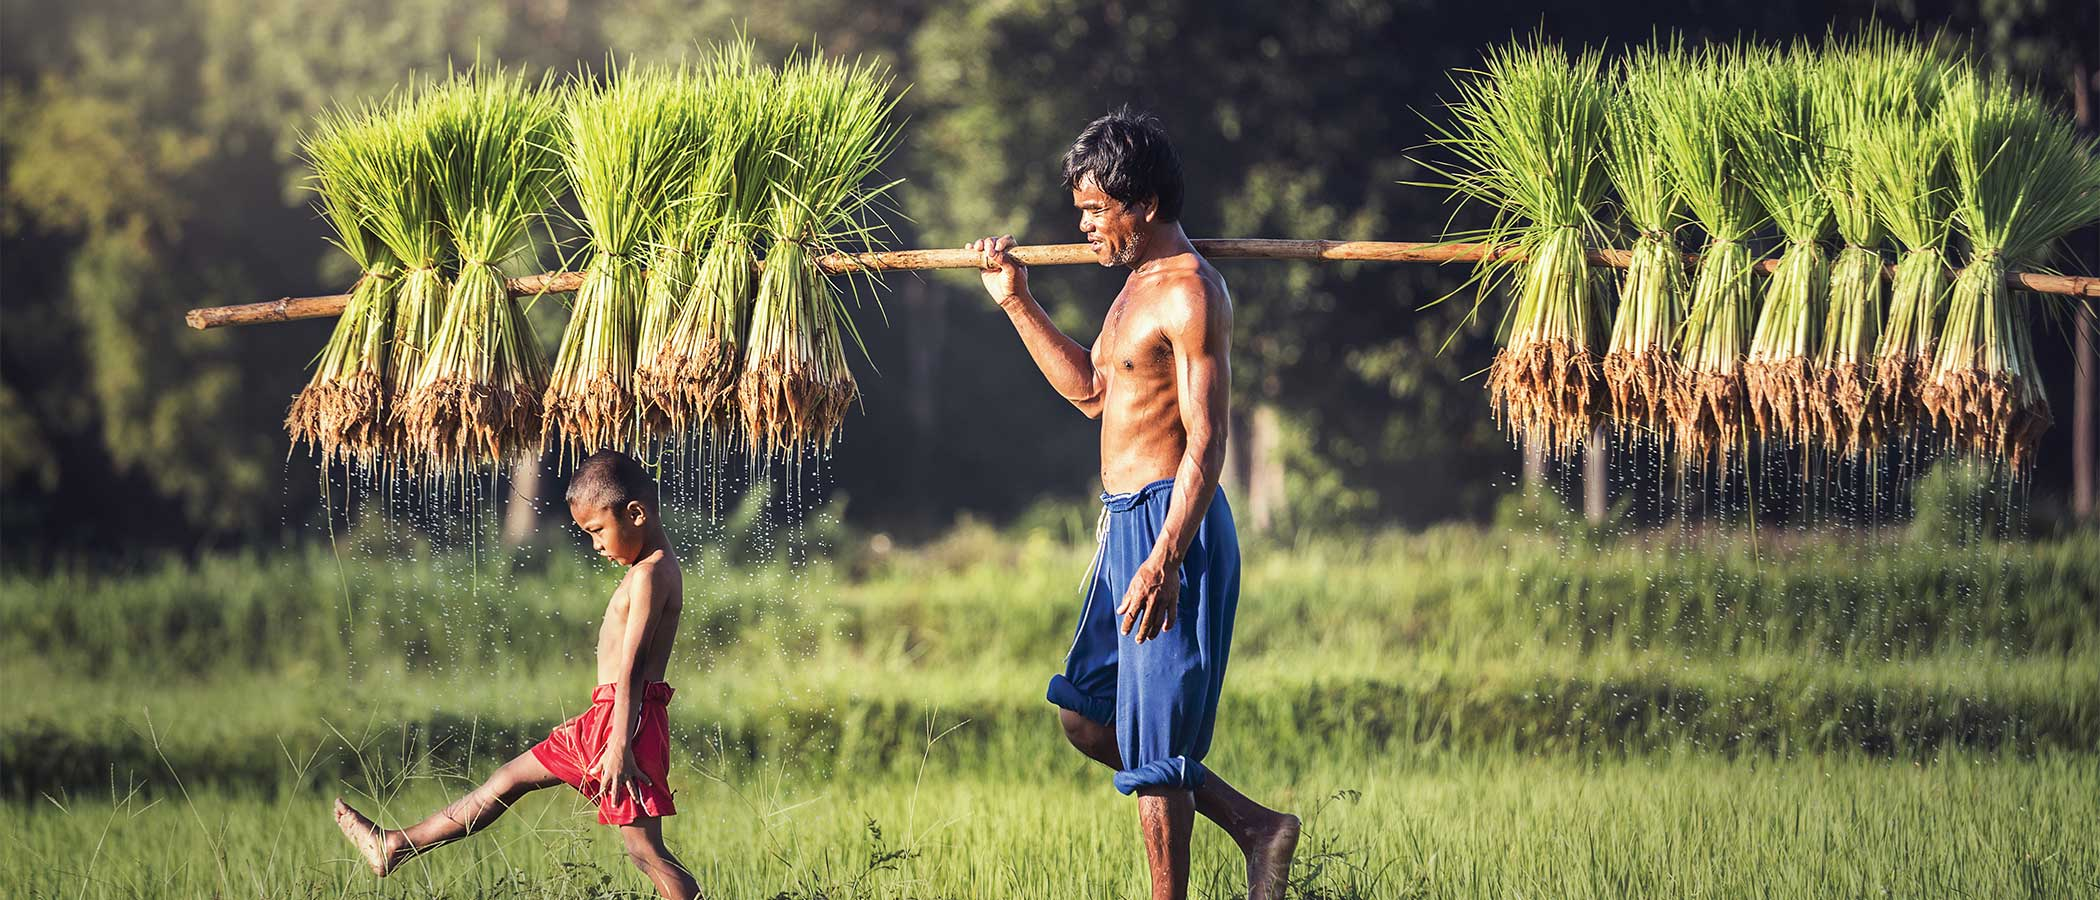 Man and child carrying rice plants tied to a long pole.